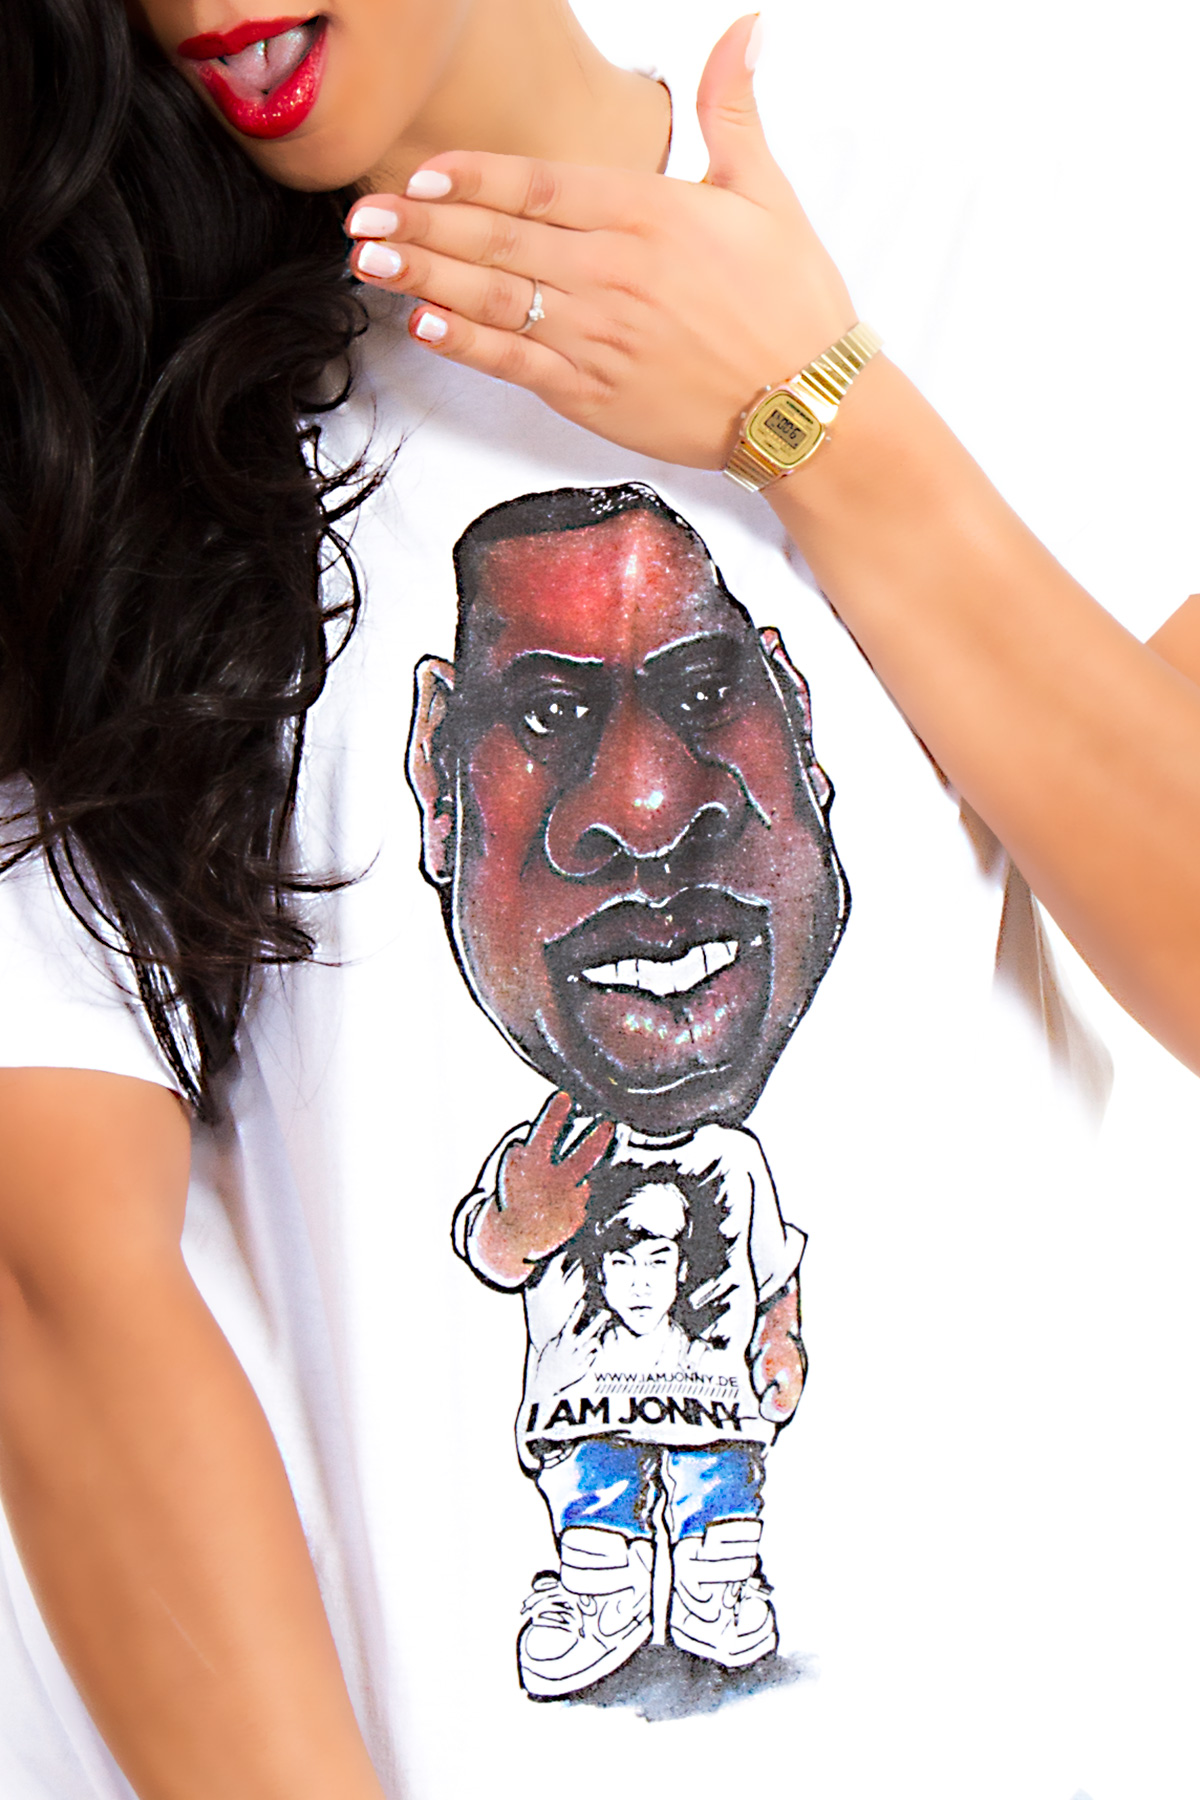 I Am Jonny Jay Caricature Fan T-Shirt in White by Cao Bao Vu